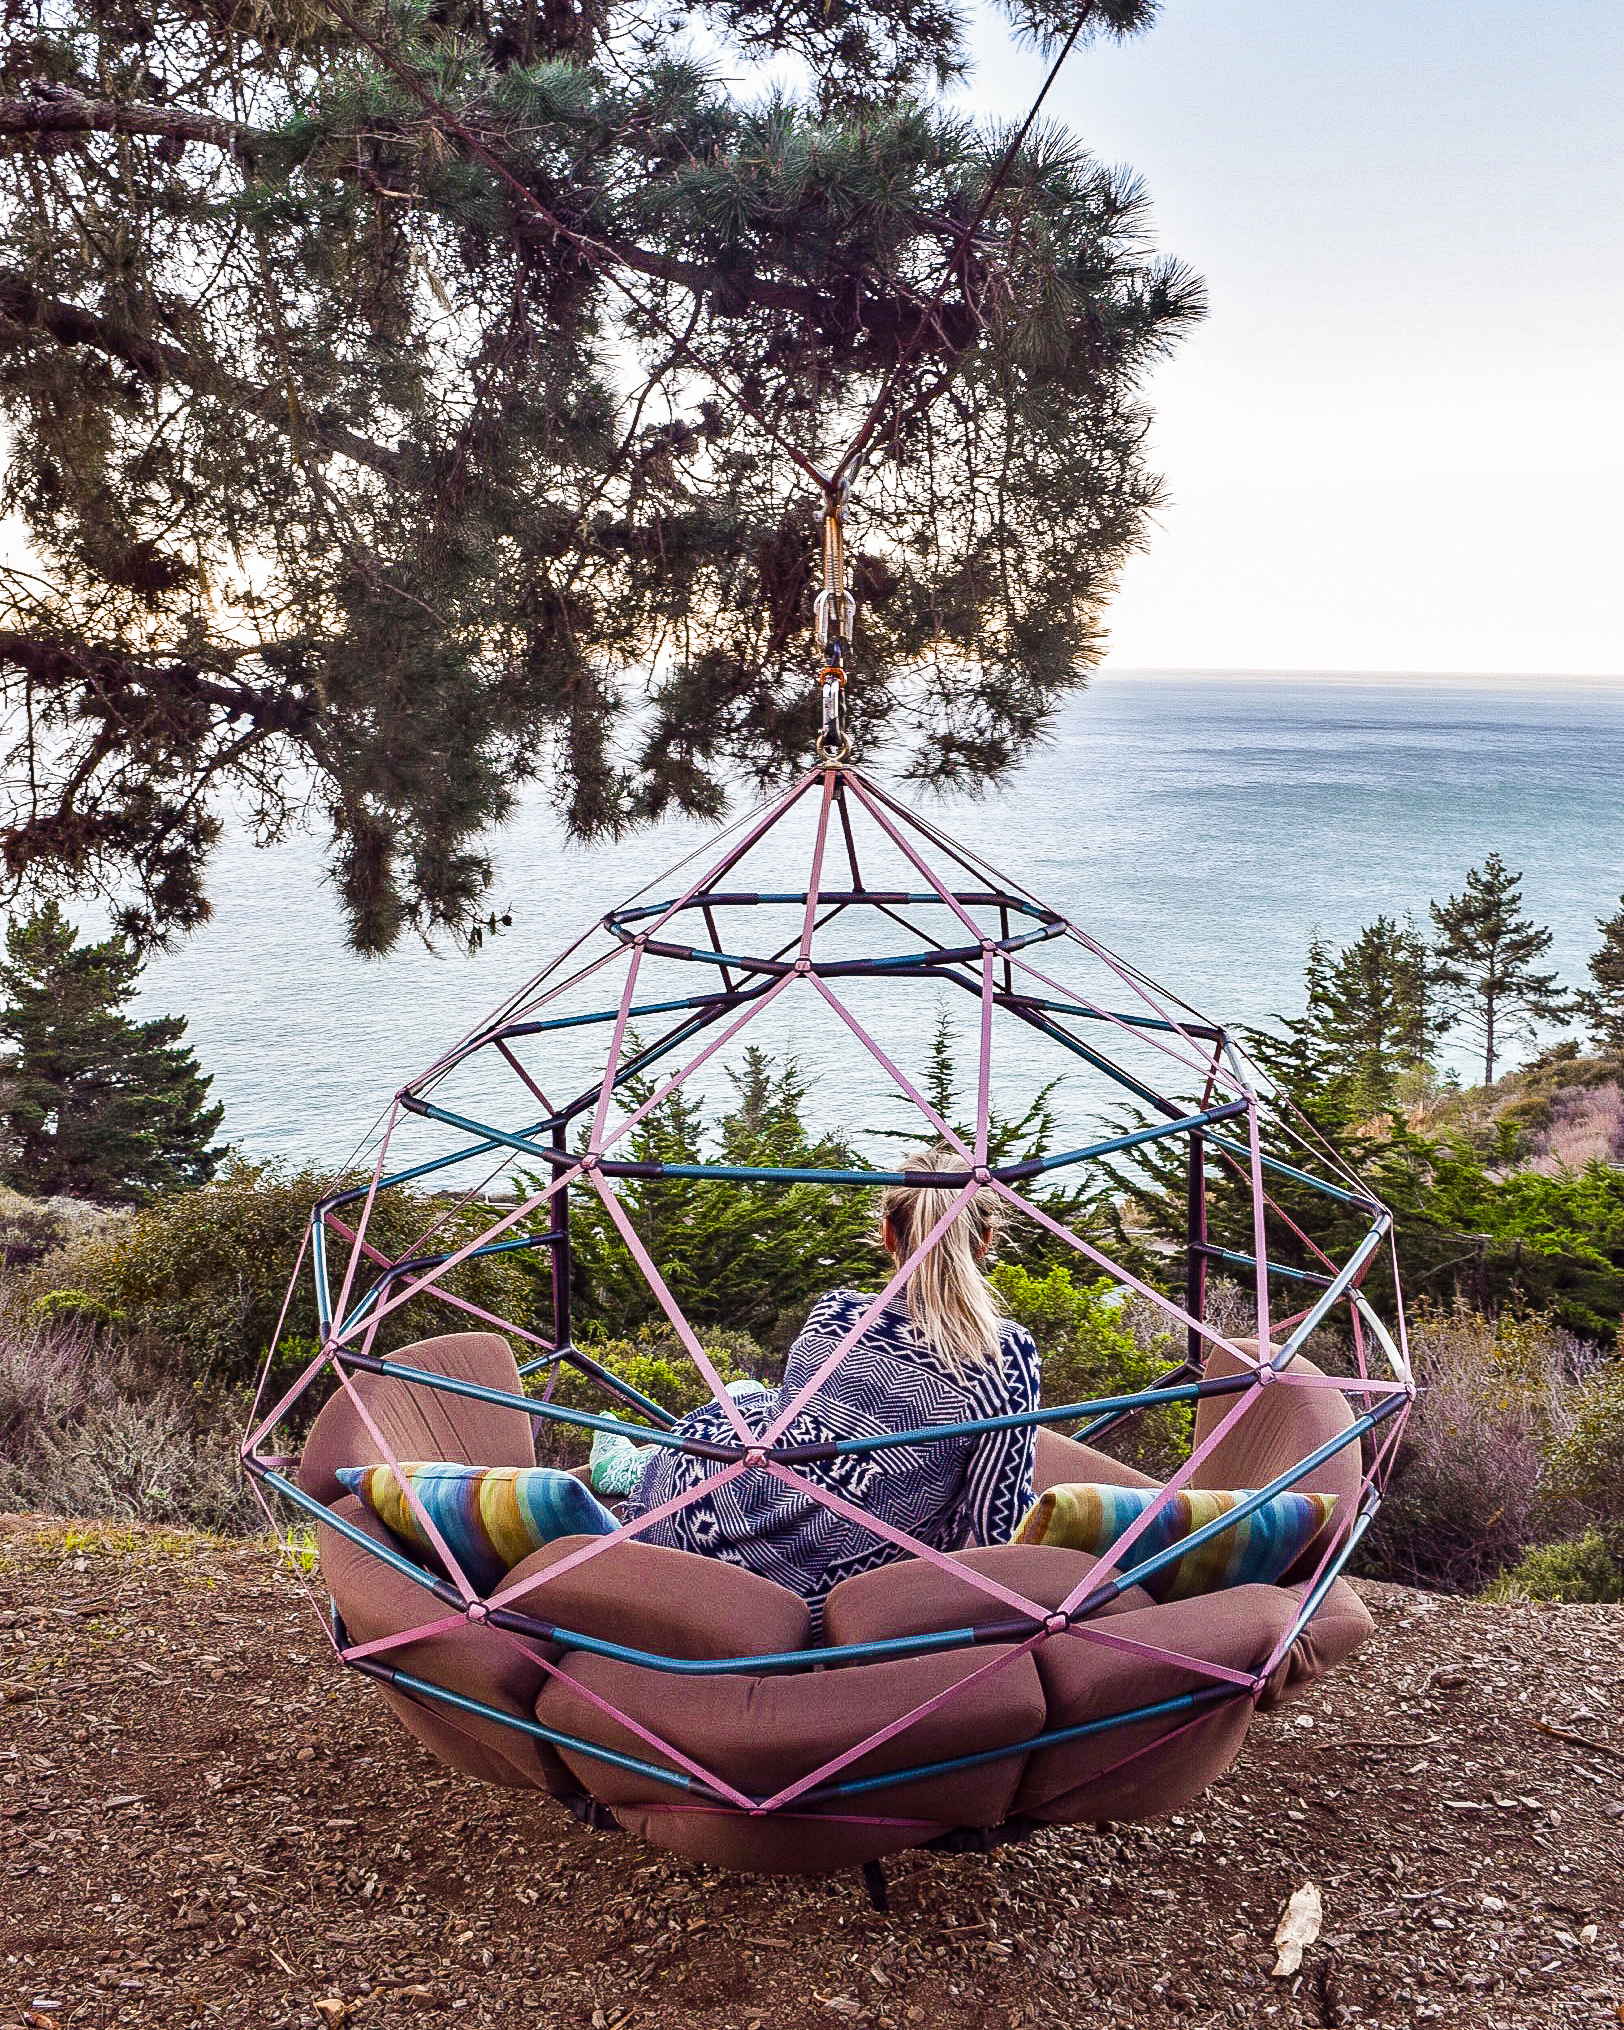 We were able to snag a single night stay at Treebones Glamping Resort in Big Sur, California. Usually, they require a three night stay at over $300 per night, but after getting in contact with them, they allowed us to book one night since that was all that was available for the weekend we were looking, saving us significant money.